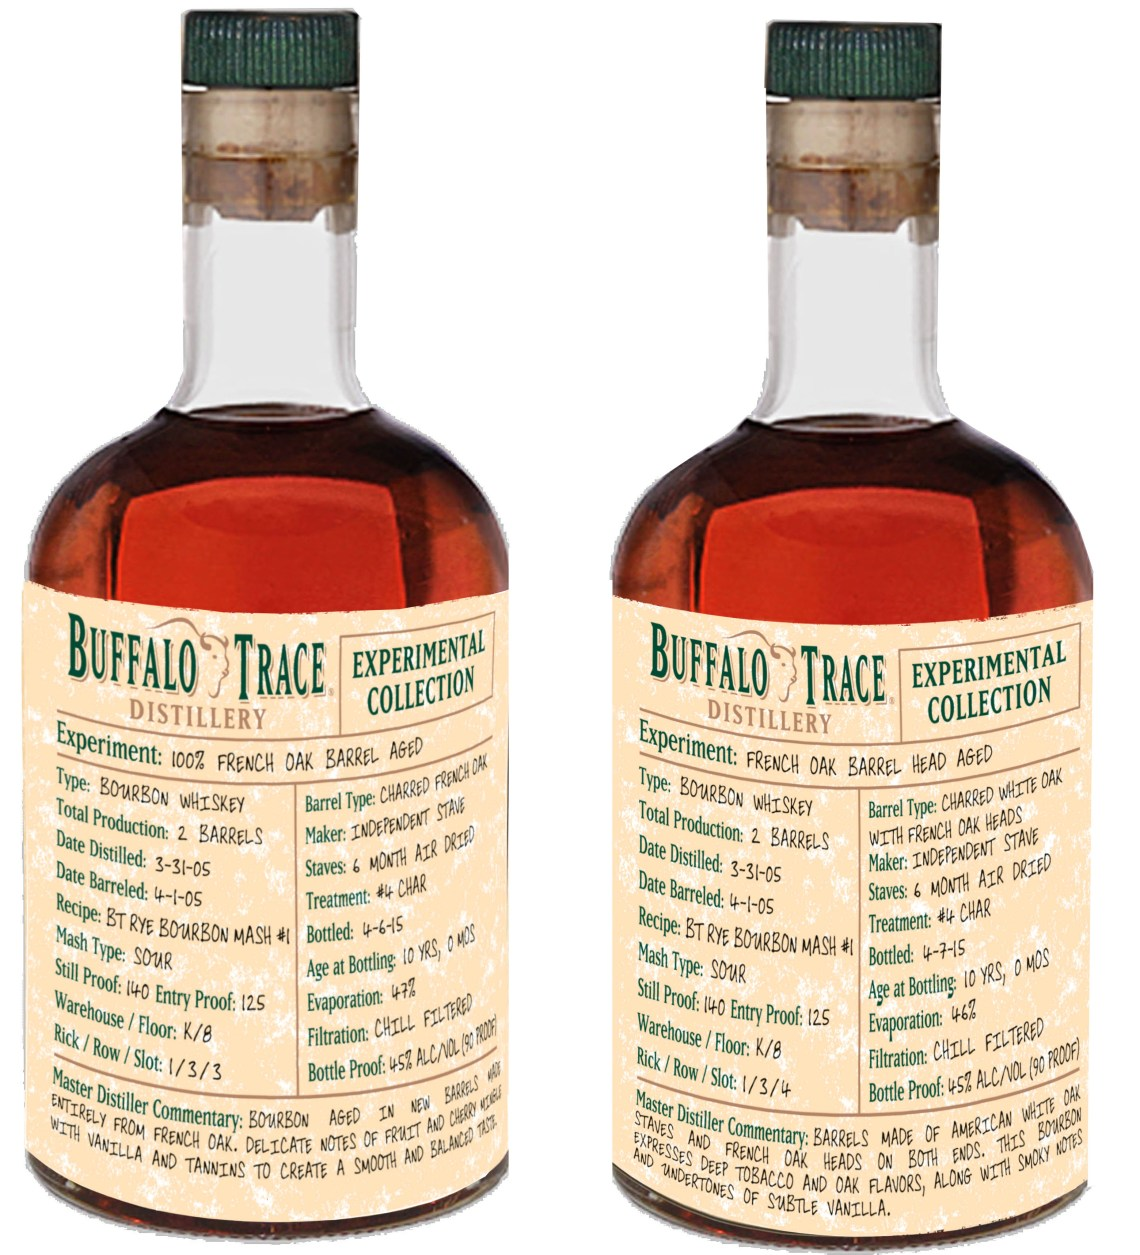 Buffalo Trace Experimental Collection 10 Year Old 100% French Oak Barrel Aged Bourbon